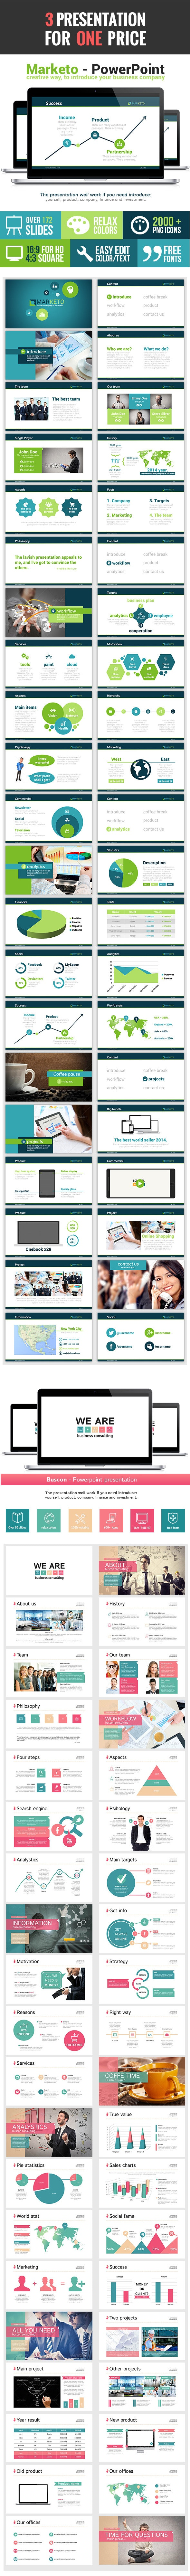 3 in 1 Powerpoint Bundle V2.0 - Finance PowerPoint Templates